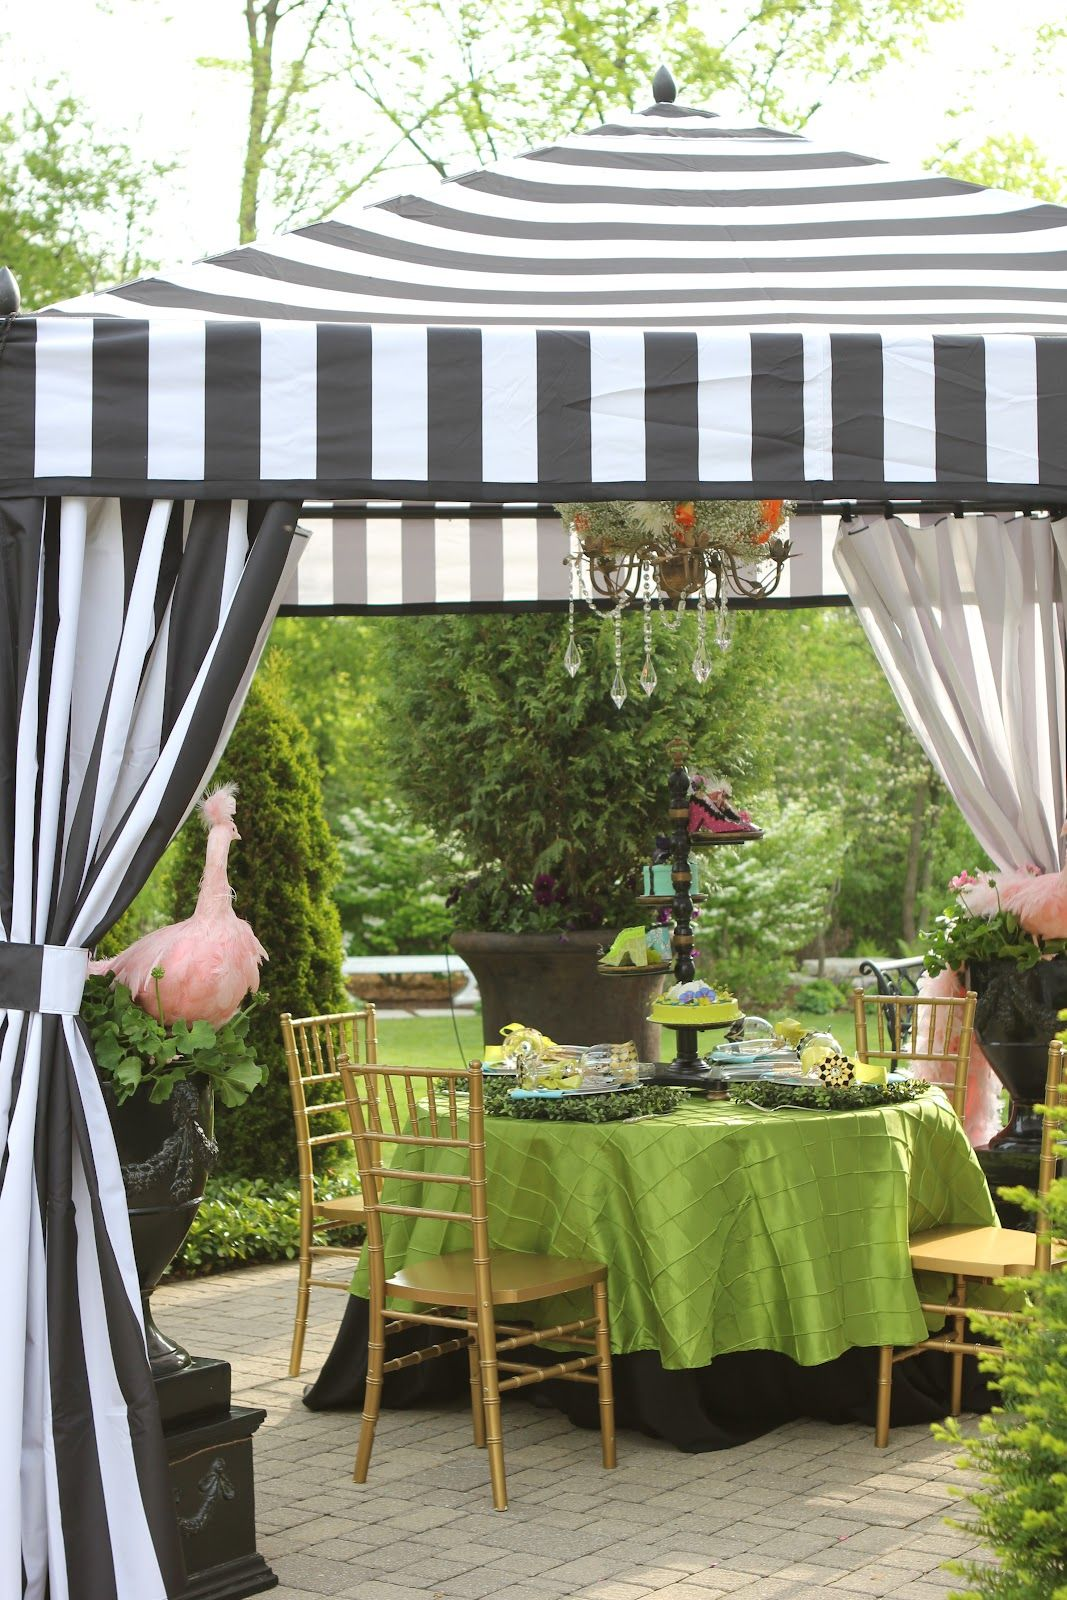 stripped outdoor tent - Google Search | Palm Beach Style | Pinterest ...